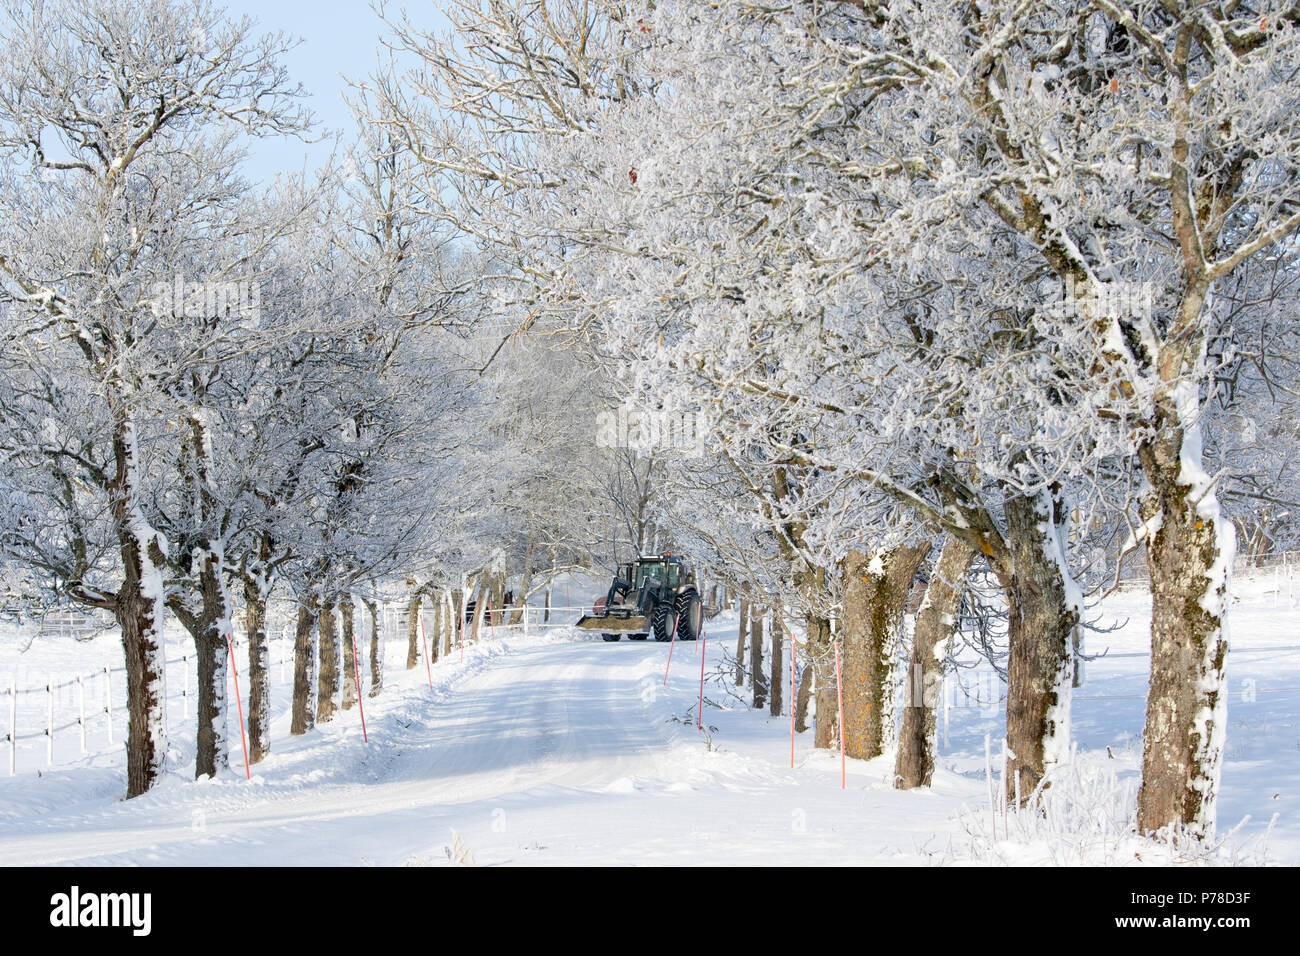 tractor on winter road - Stock Image